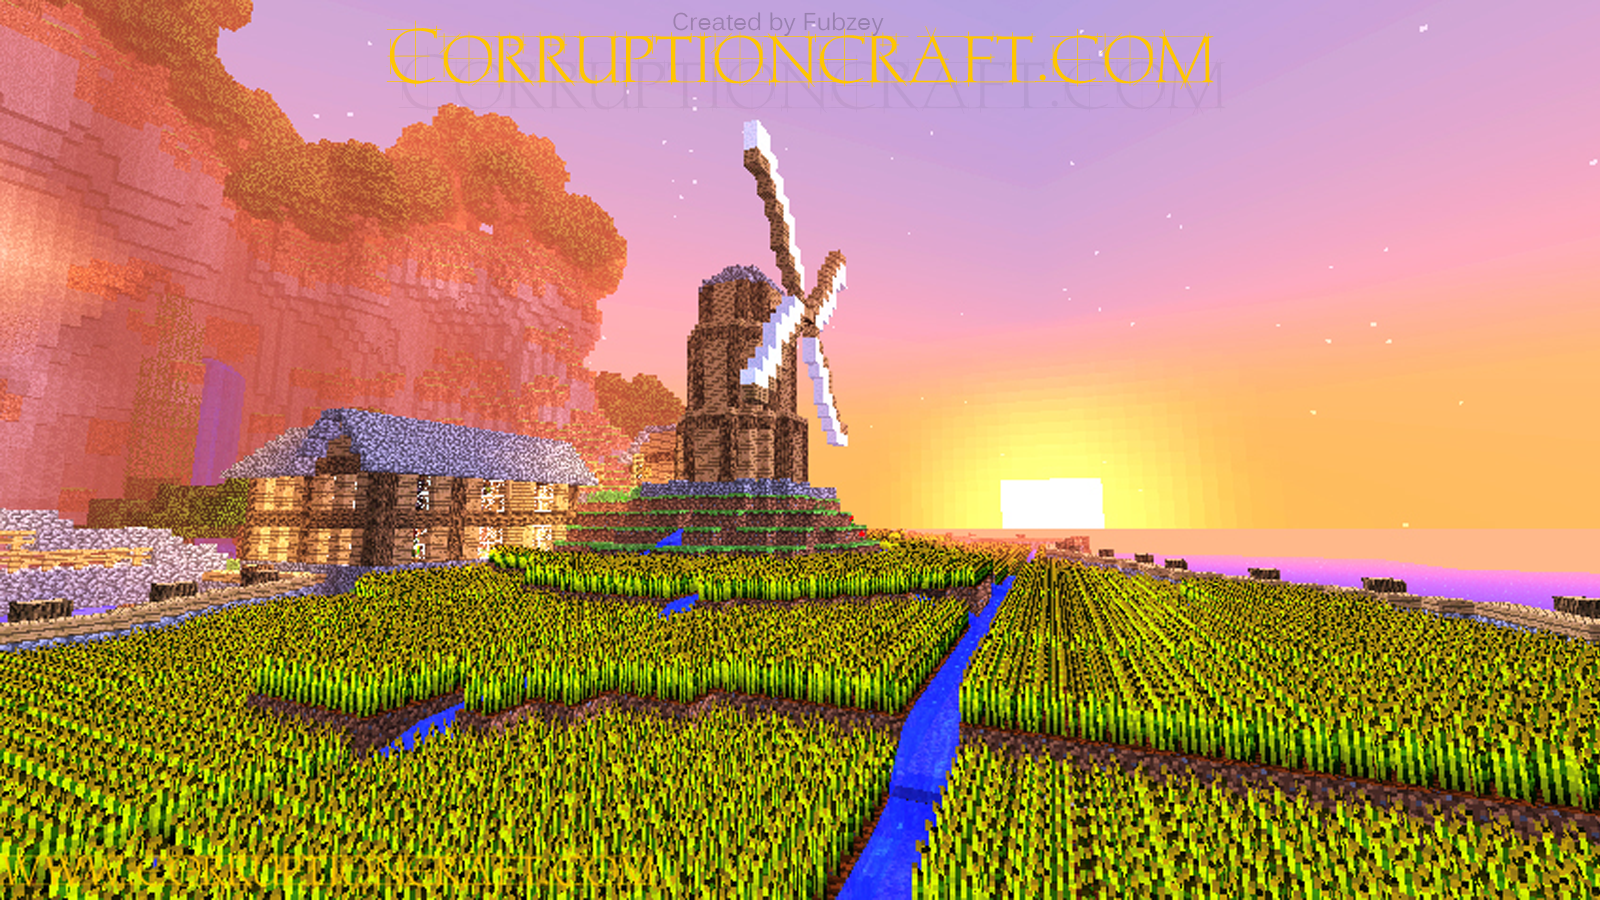 Simple Wallpaper Minecraft Scenery - a65cbc133a4502fc88a4d644be873270  Pic_597691.png